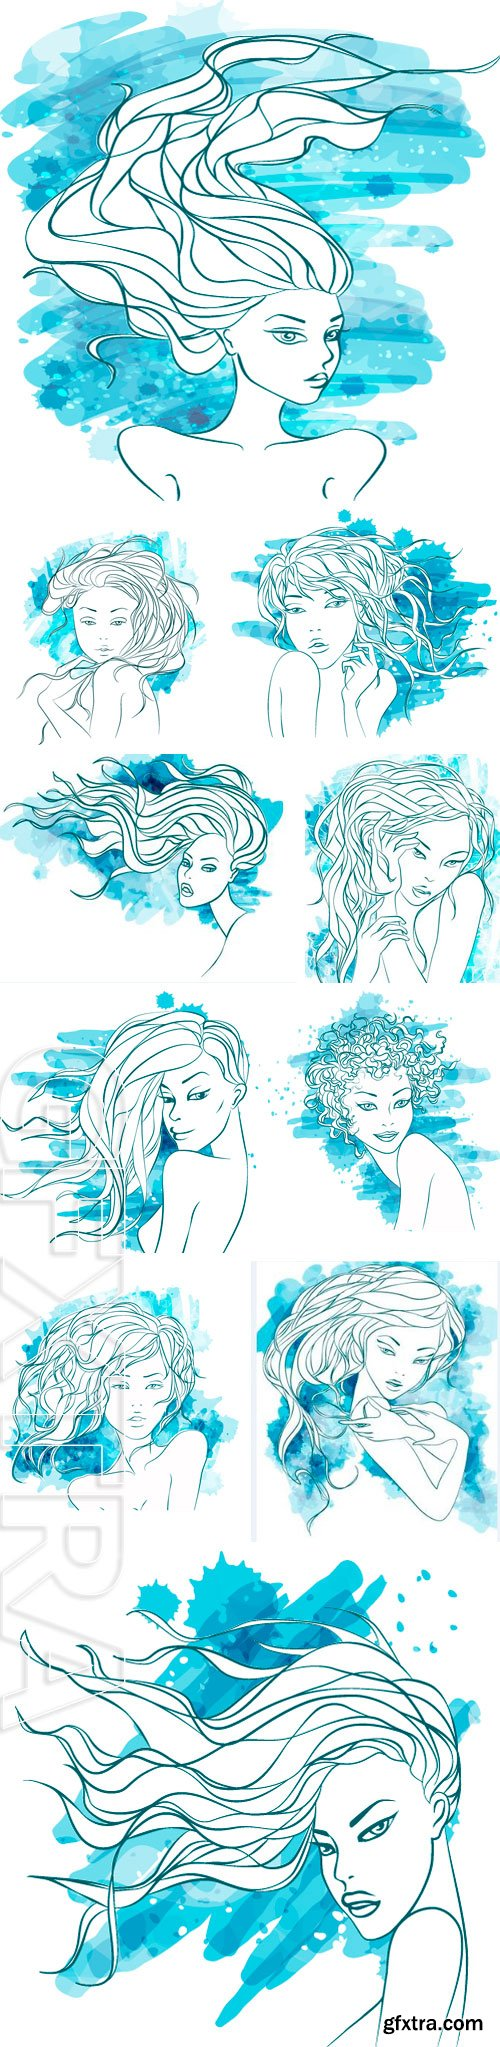 Stock Vectors - Watercolor Woman. Vector Illustration. Stylish Design. Girl Silhouette. Cosmetics. Beauty. Health and spa. Fashion themes